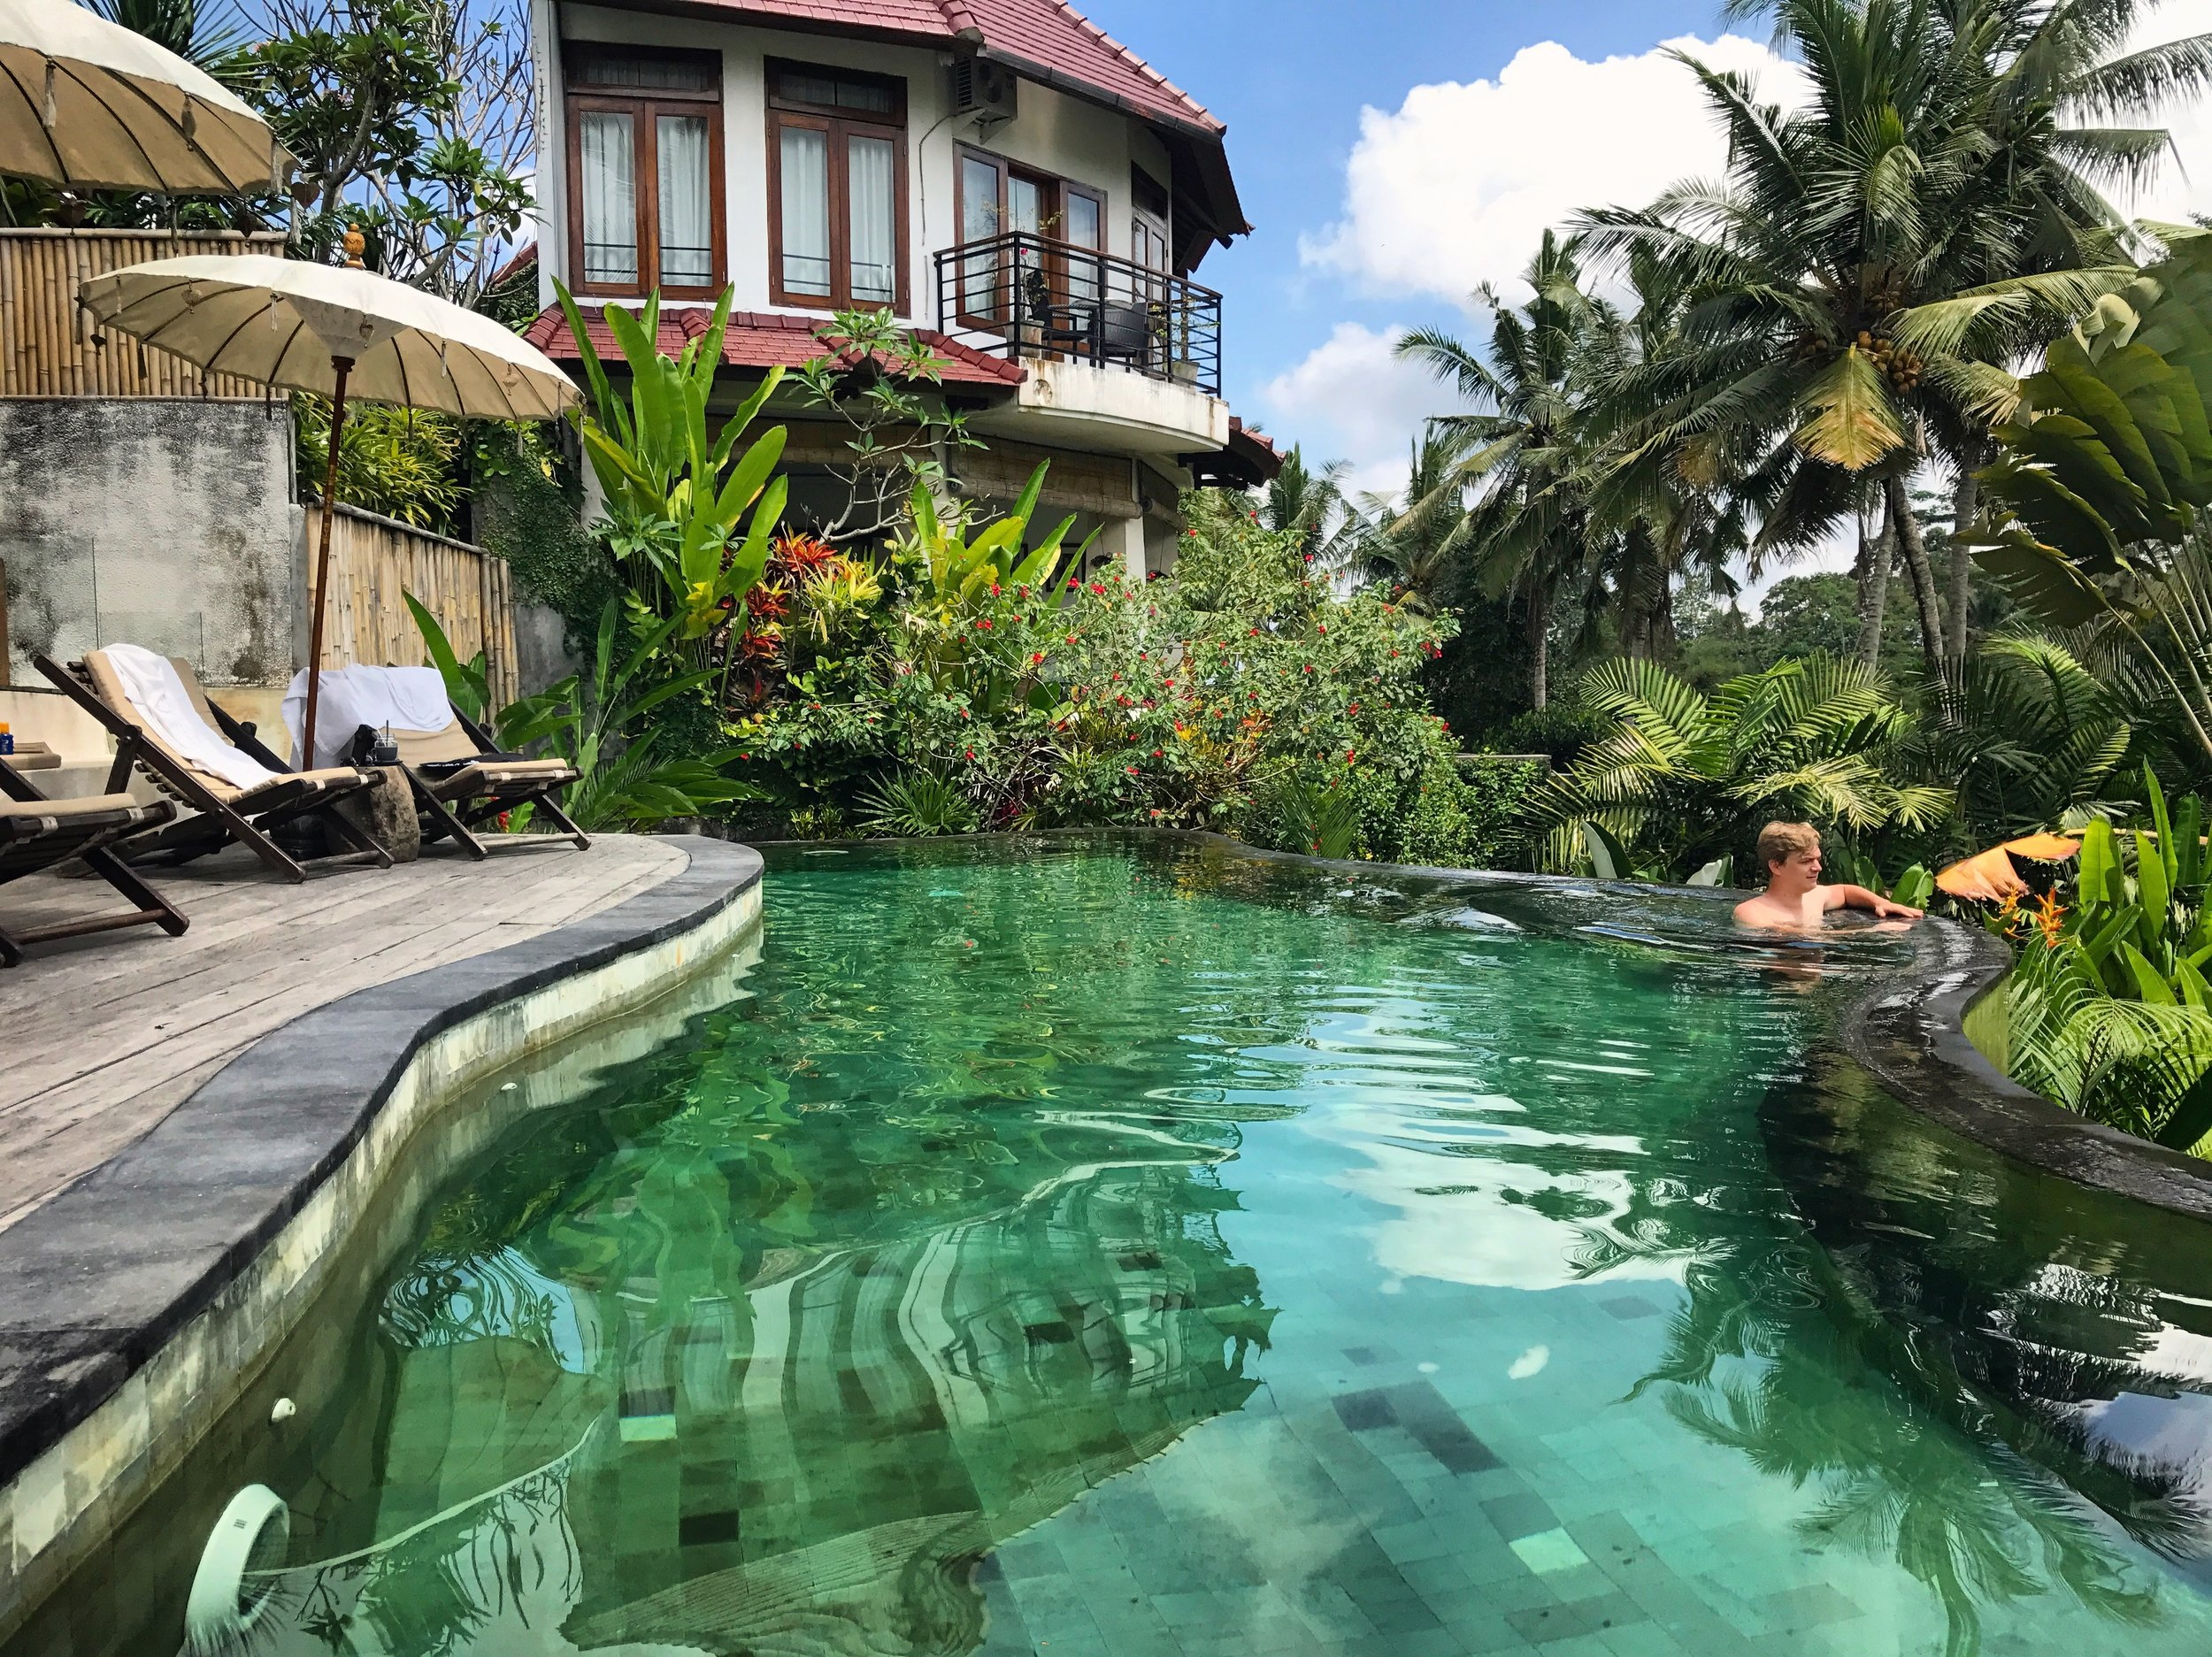 Enjoying the pool at Calma Ubud